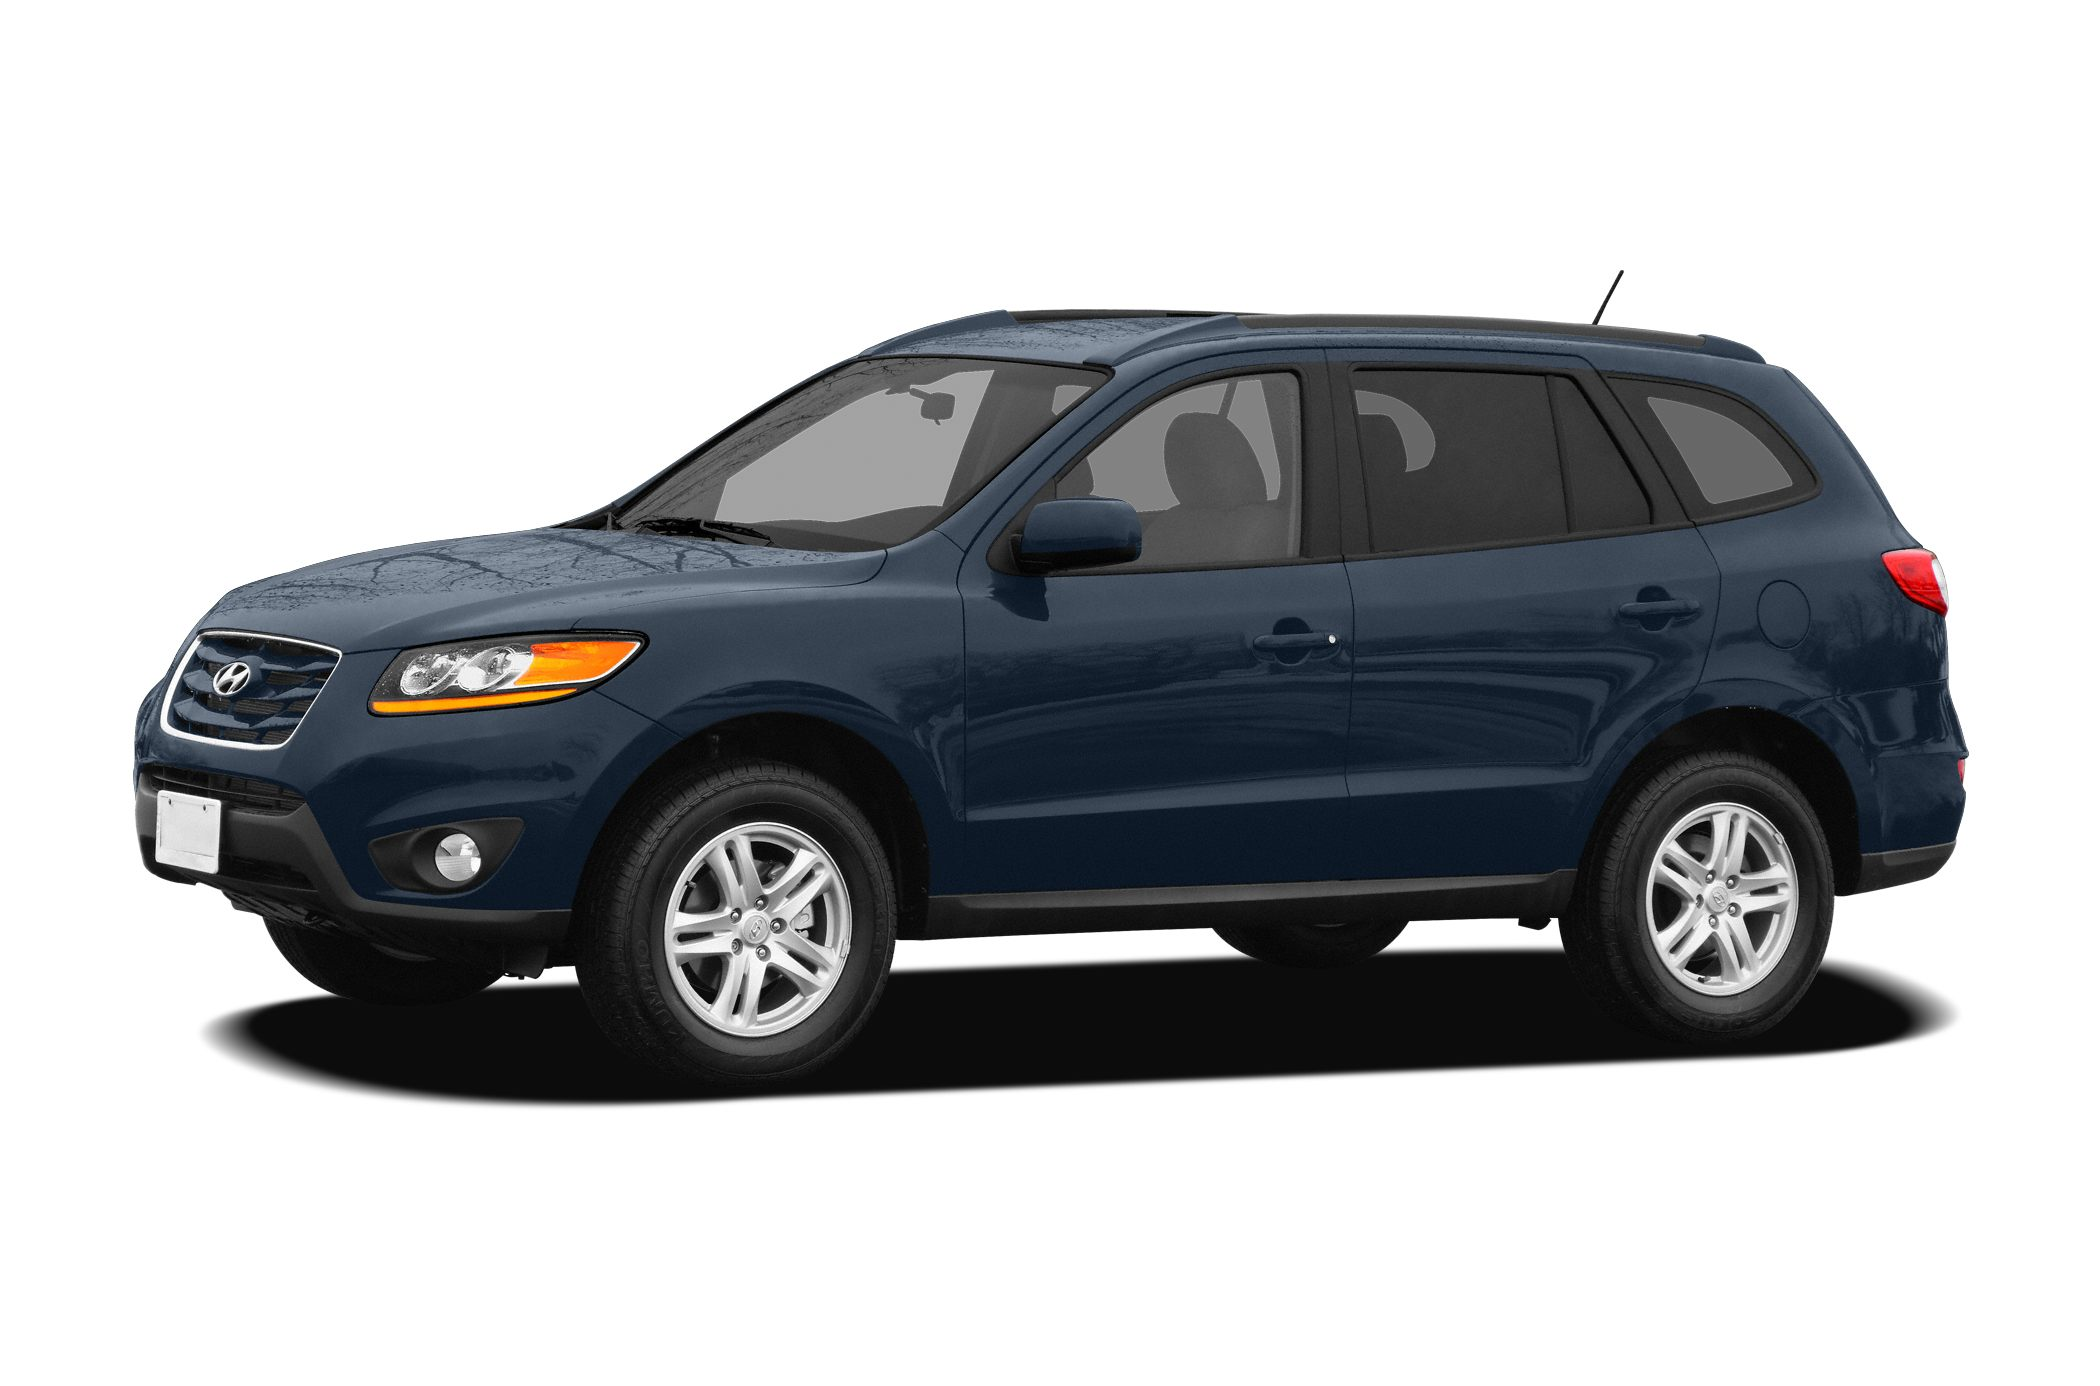 2011 Hyundai Santa Fe GLS SUV for sale in Lawrence for $16,777 with 48,436 miles.